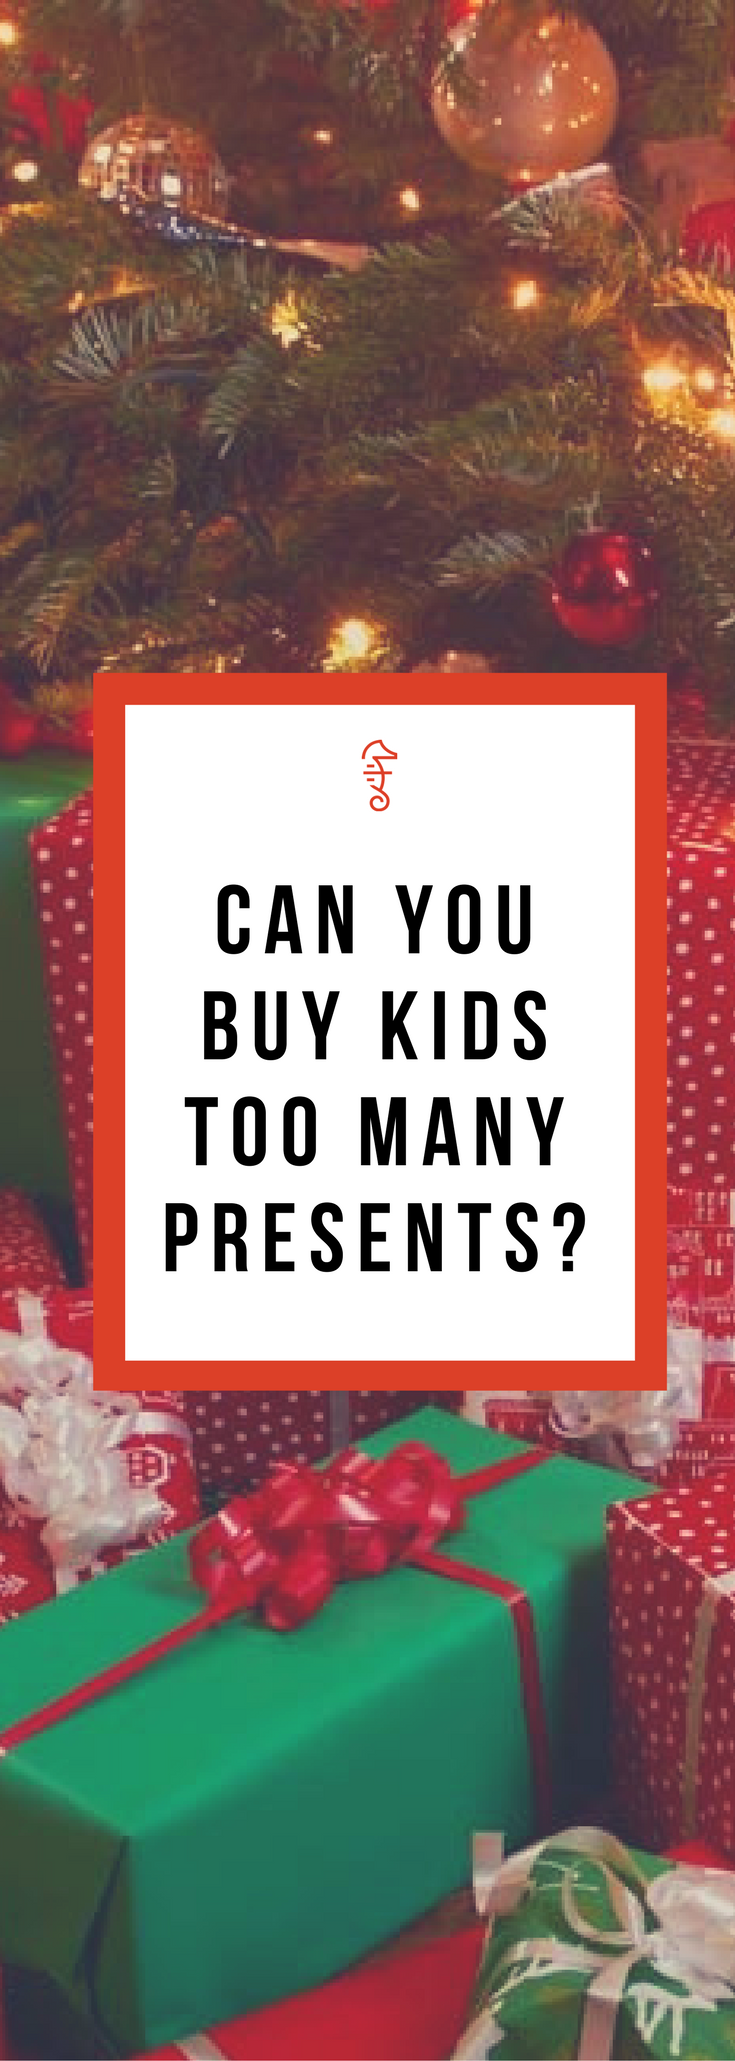 If You Re Going All Out On Christmas Gifts For Your Kids Here S How To Deal If You Re Worried About Having A Spoiled Ki Spoiled Kids Kids Parenting Done Right